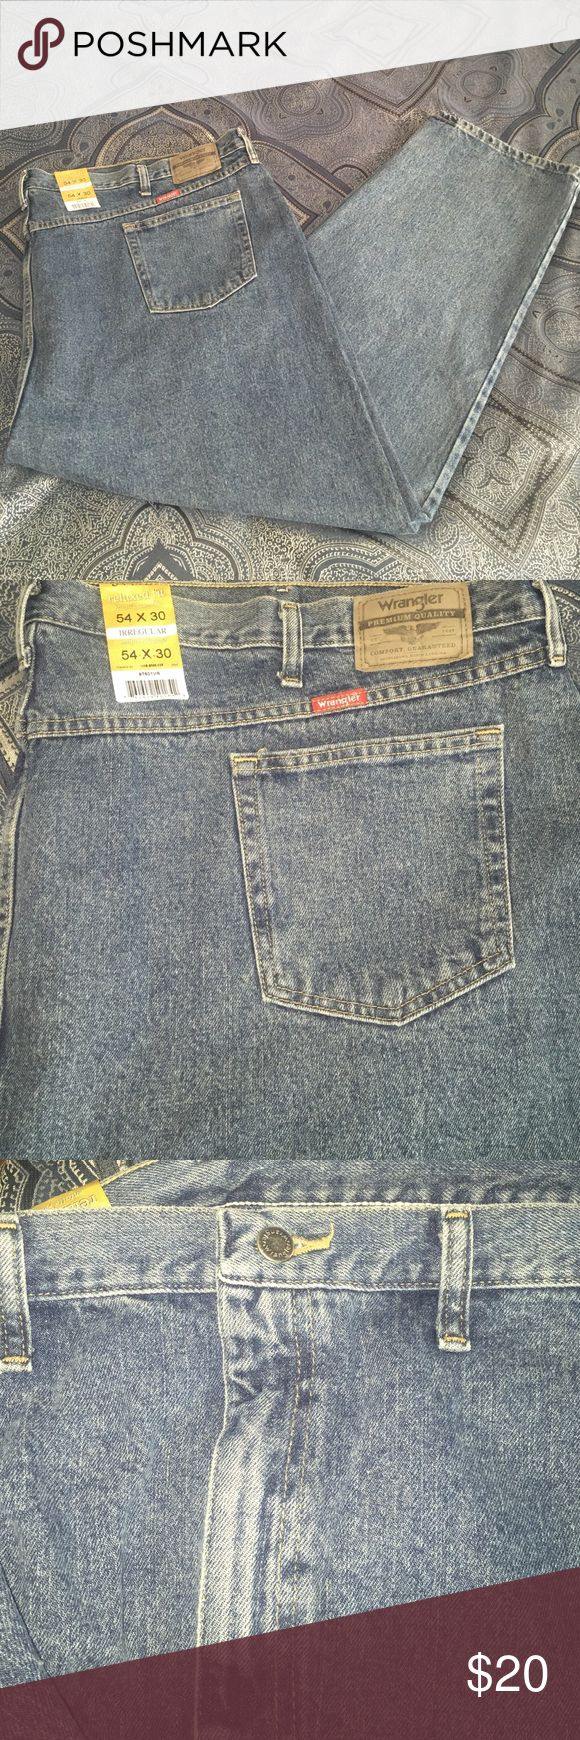 🆕👖Big & Tall Jeans By Wrangler NWT Mens Premium Quality Wrangler Denim Jeans.. Relaxed Fit Comfort Guaranteed Wrangler Jeans Relaxed